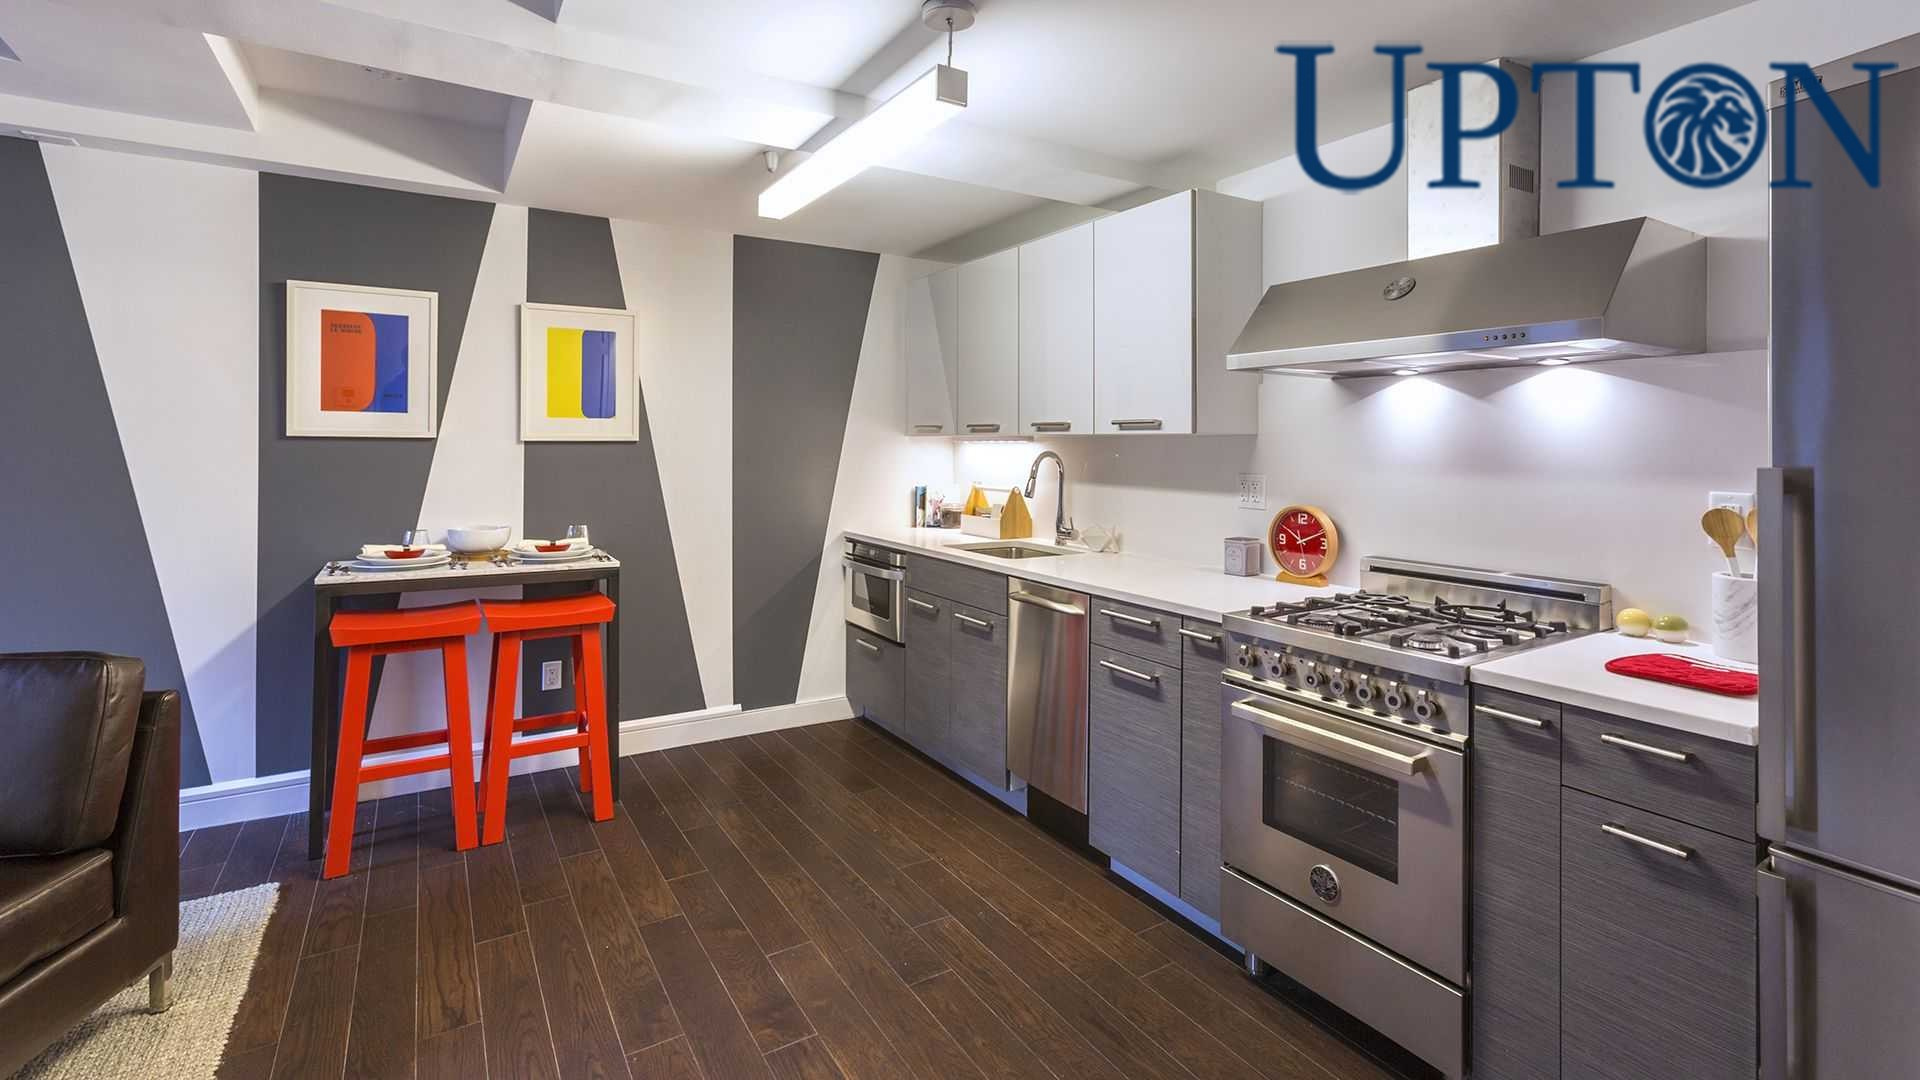 E 20th st new york ny 10009 studio apartment for rent for Cooper apartments